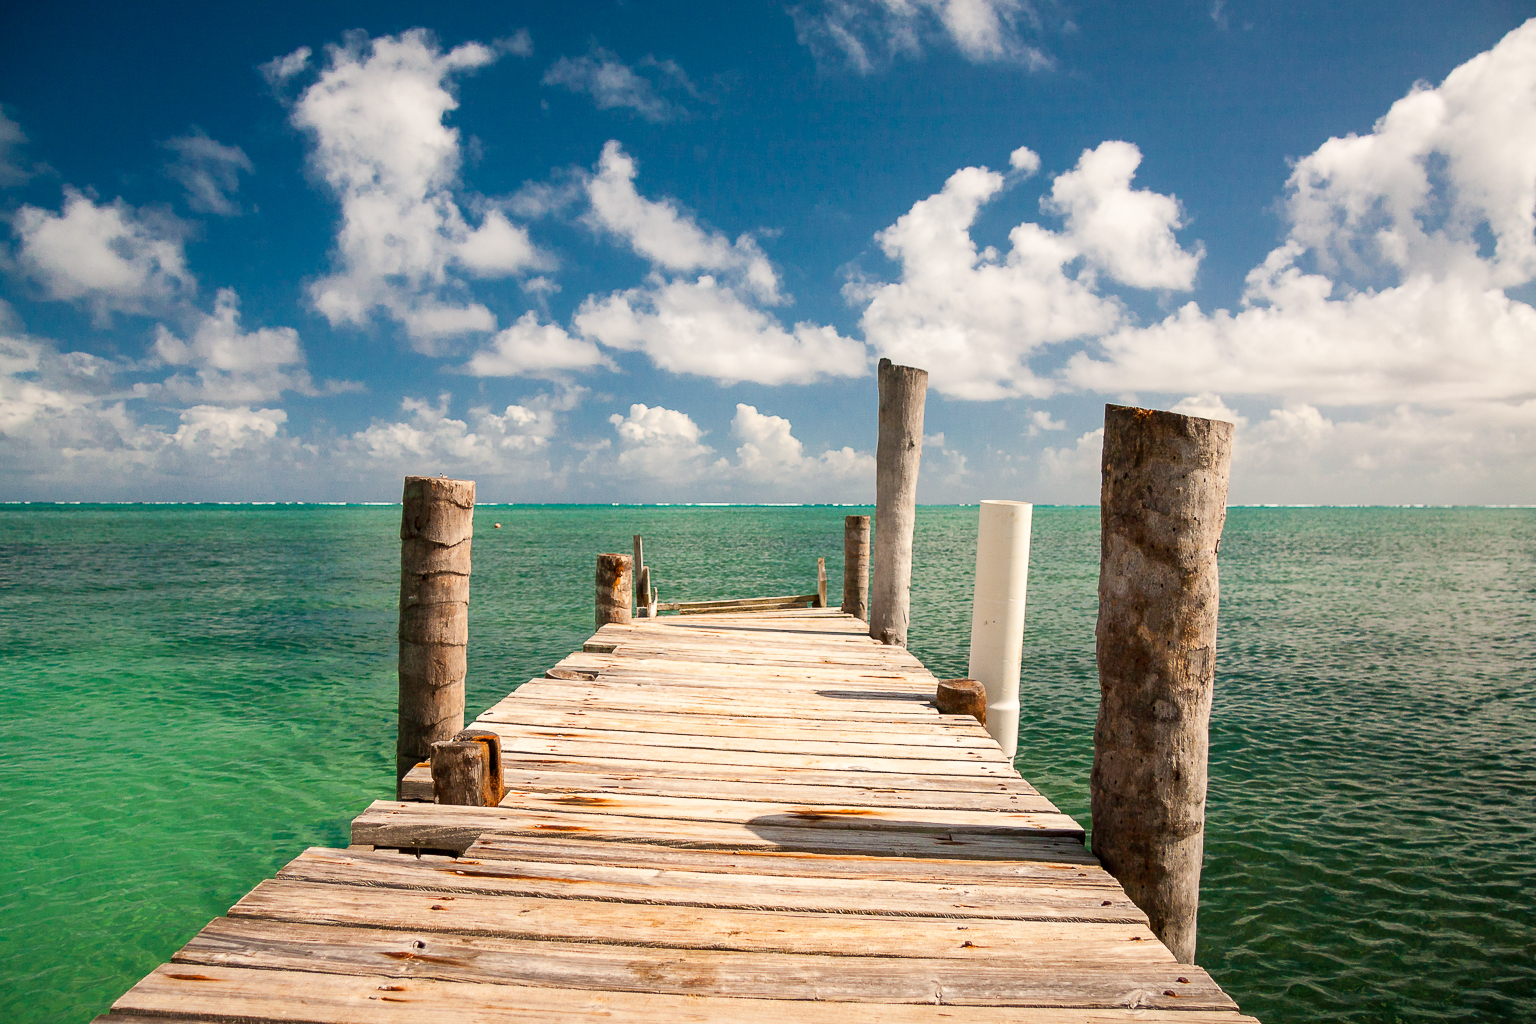 Caye Caulker: A Bit of Paradise on Earth